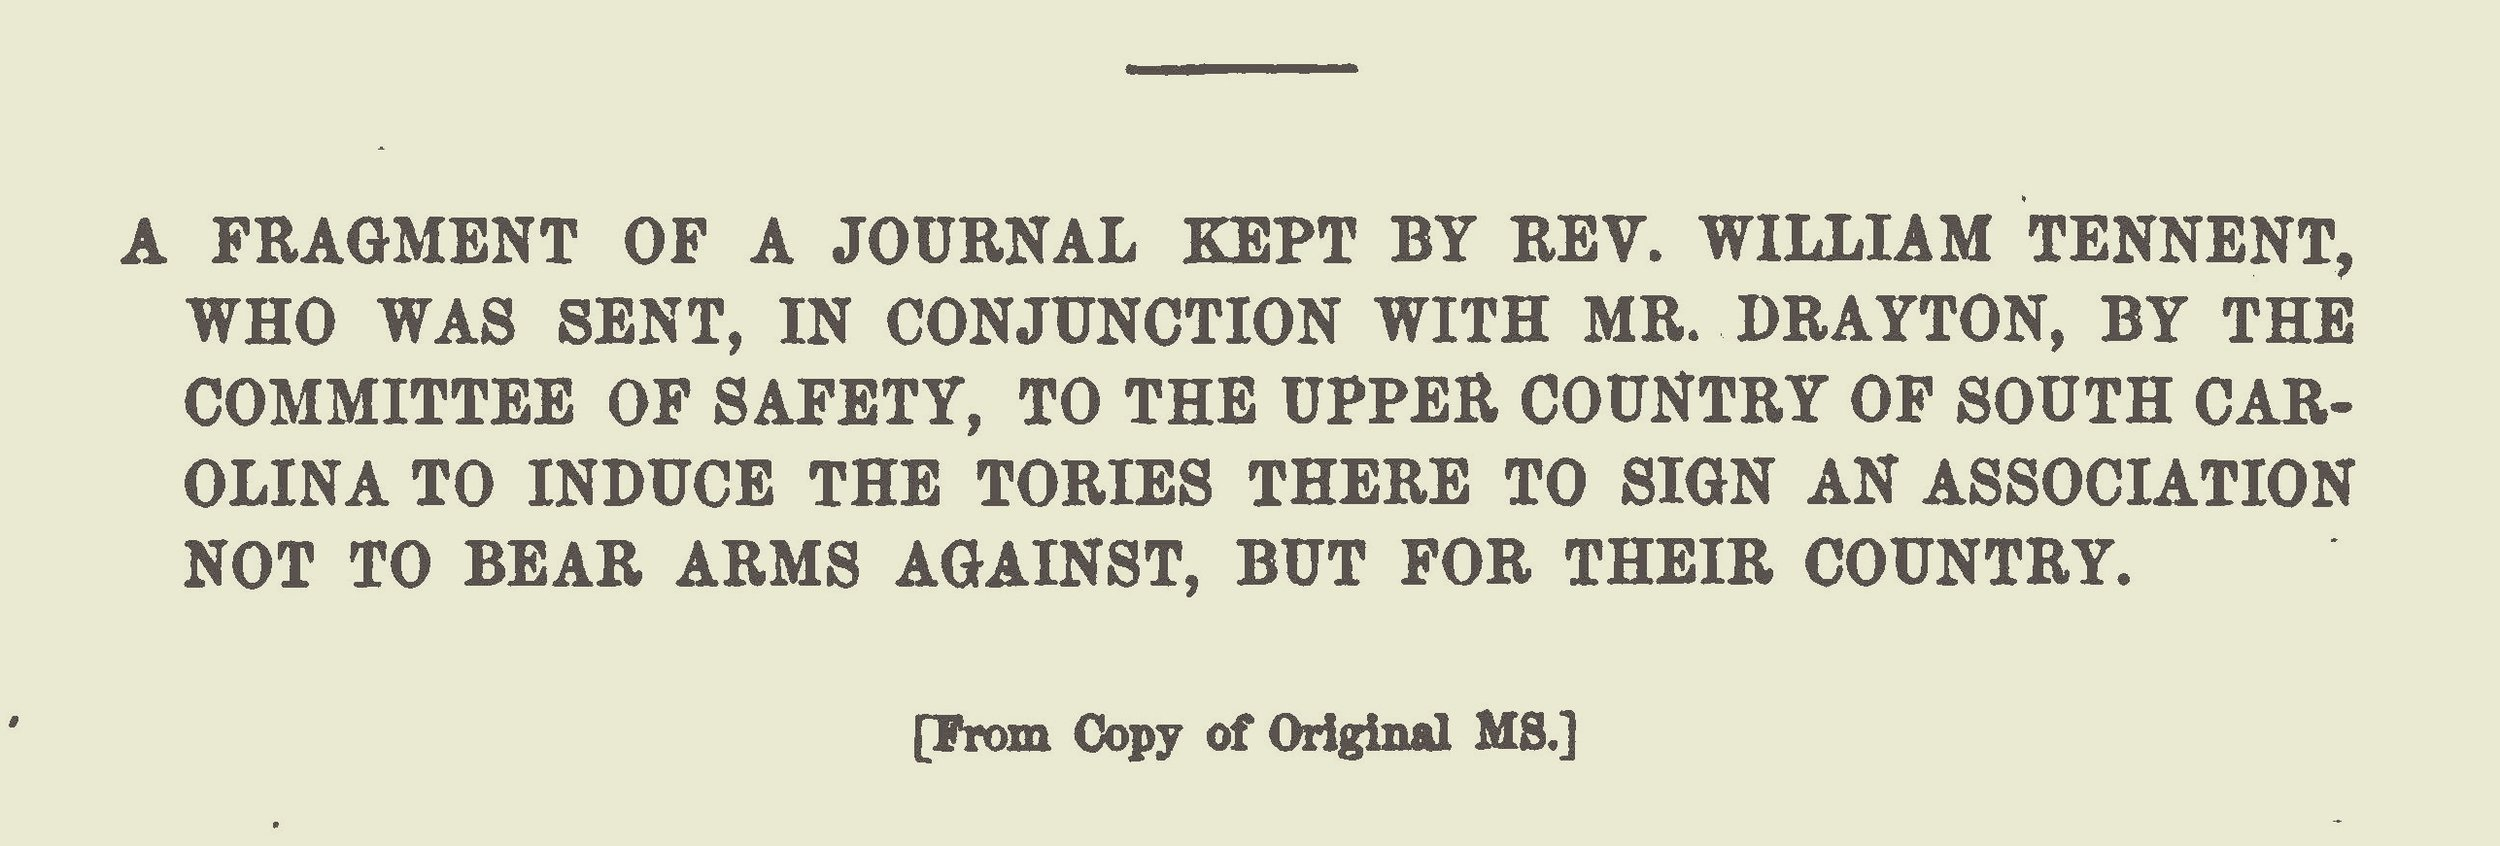 Tennent, III, William, A Fragment of a Journal Kept by Rev. William Tennent Title Page.jpg